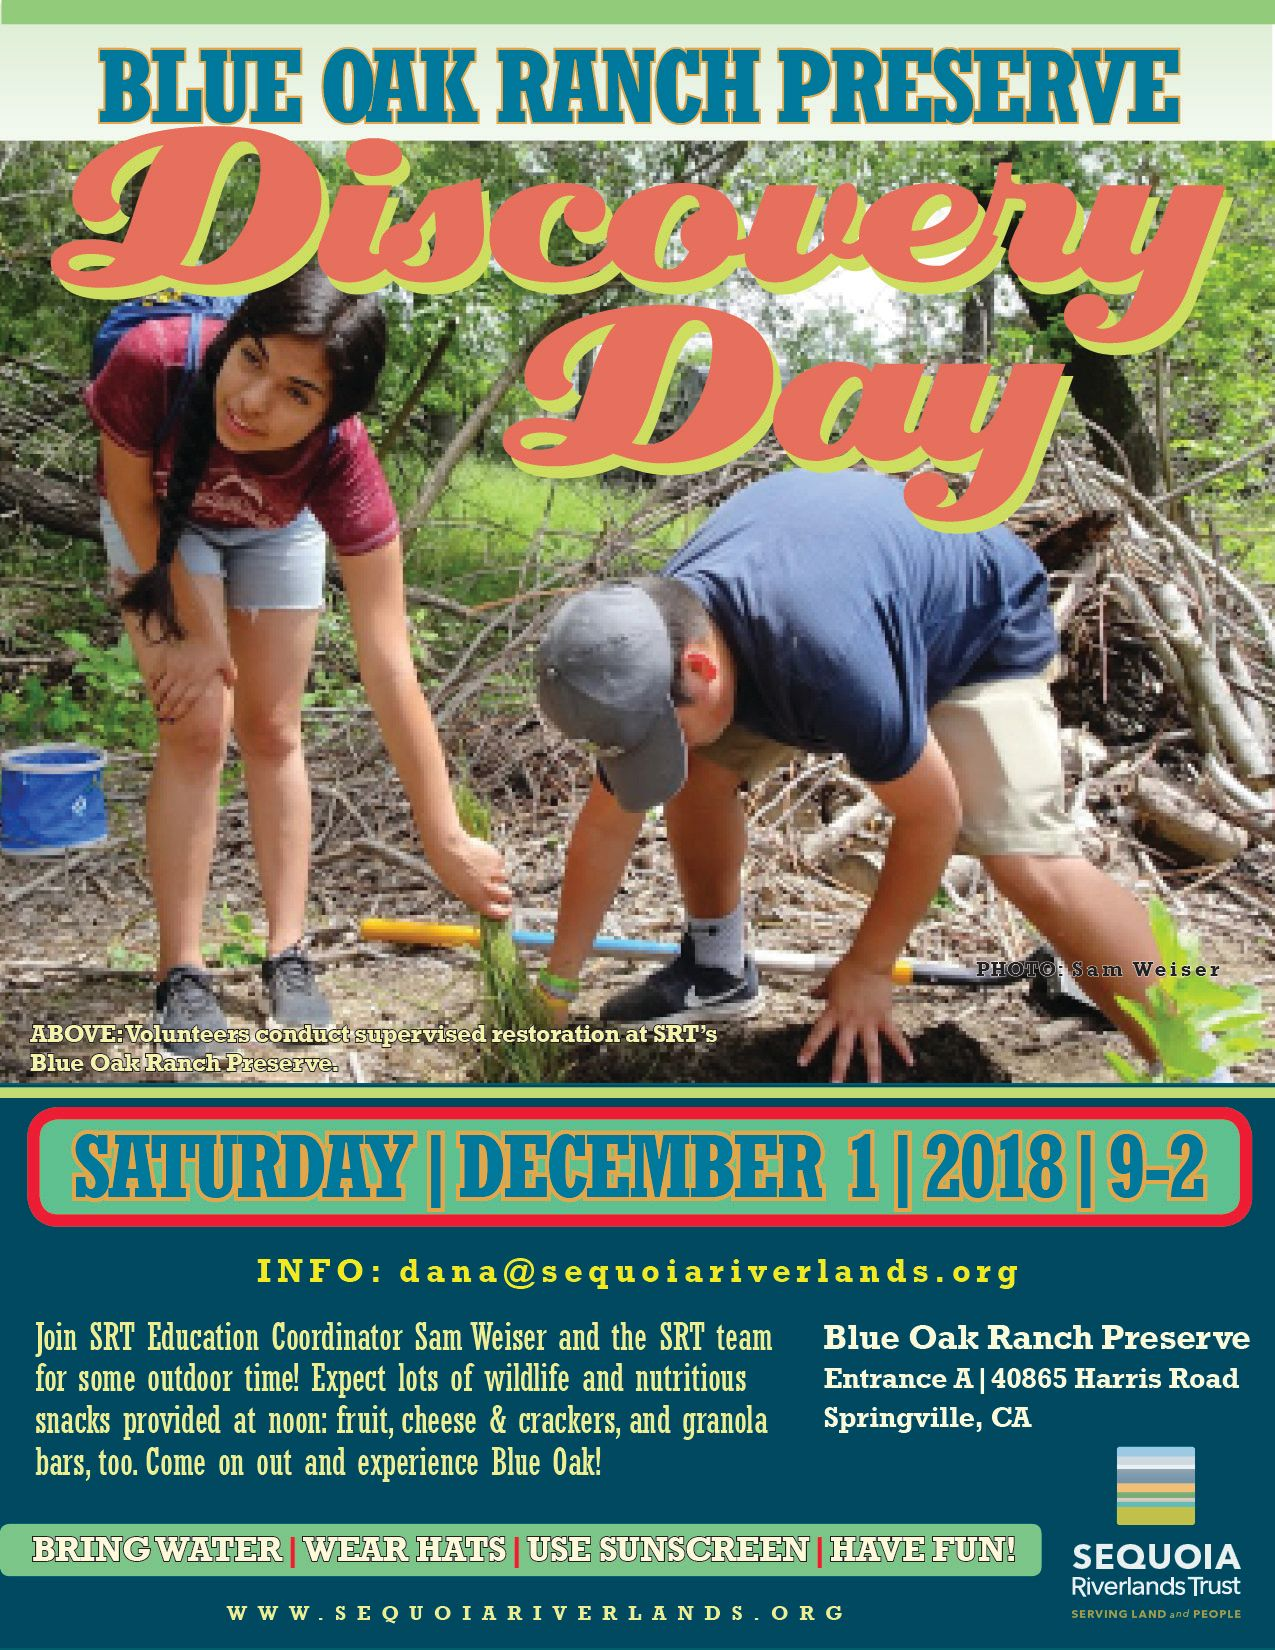 Blue Oak Ranch Discovery Day returns Dec. 1